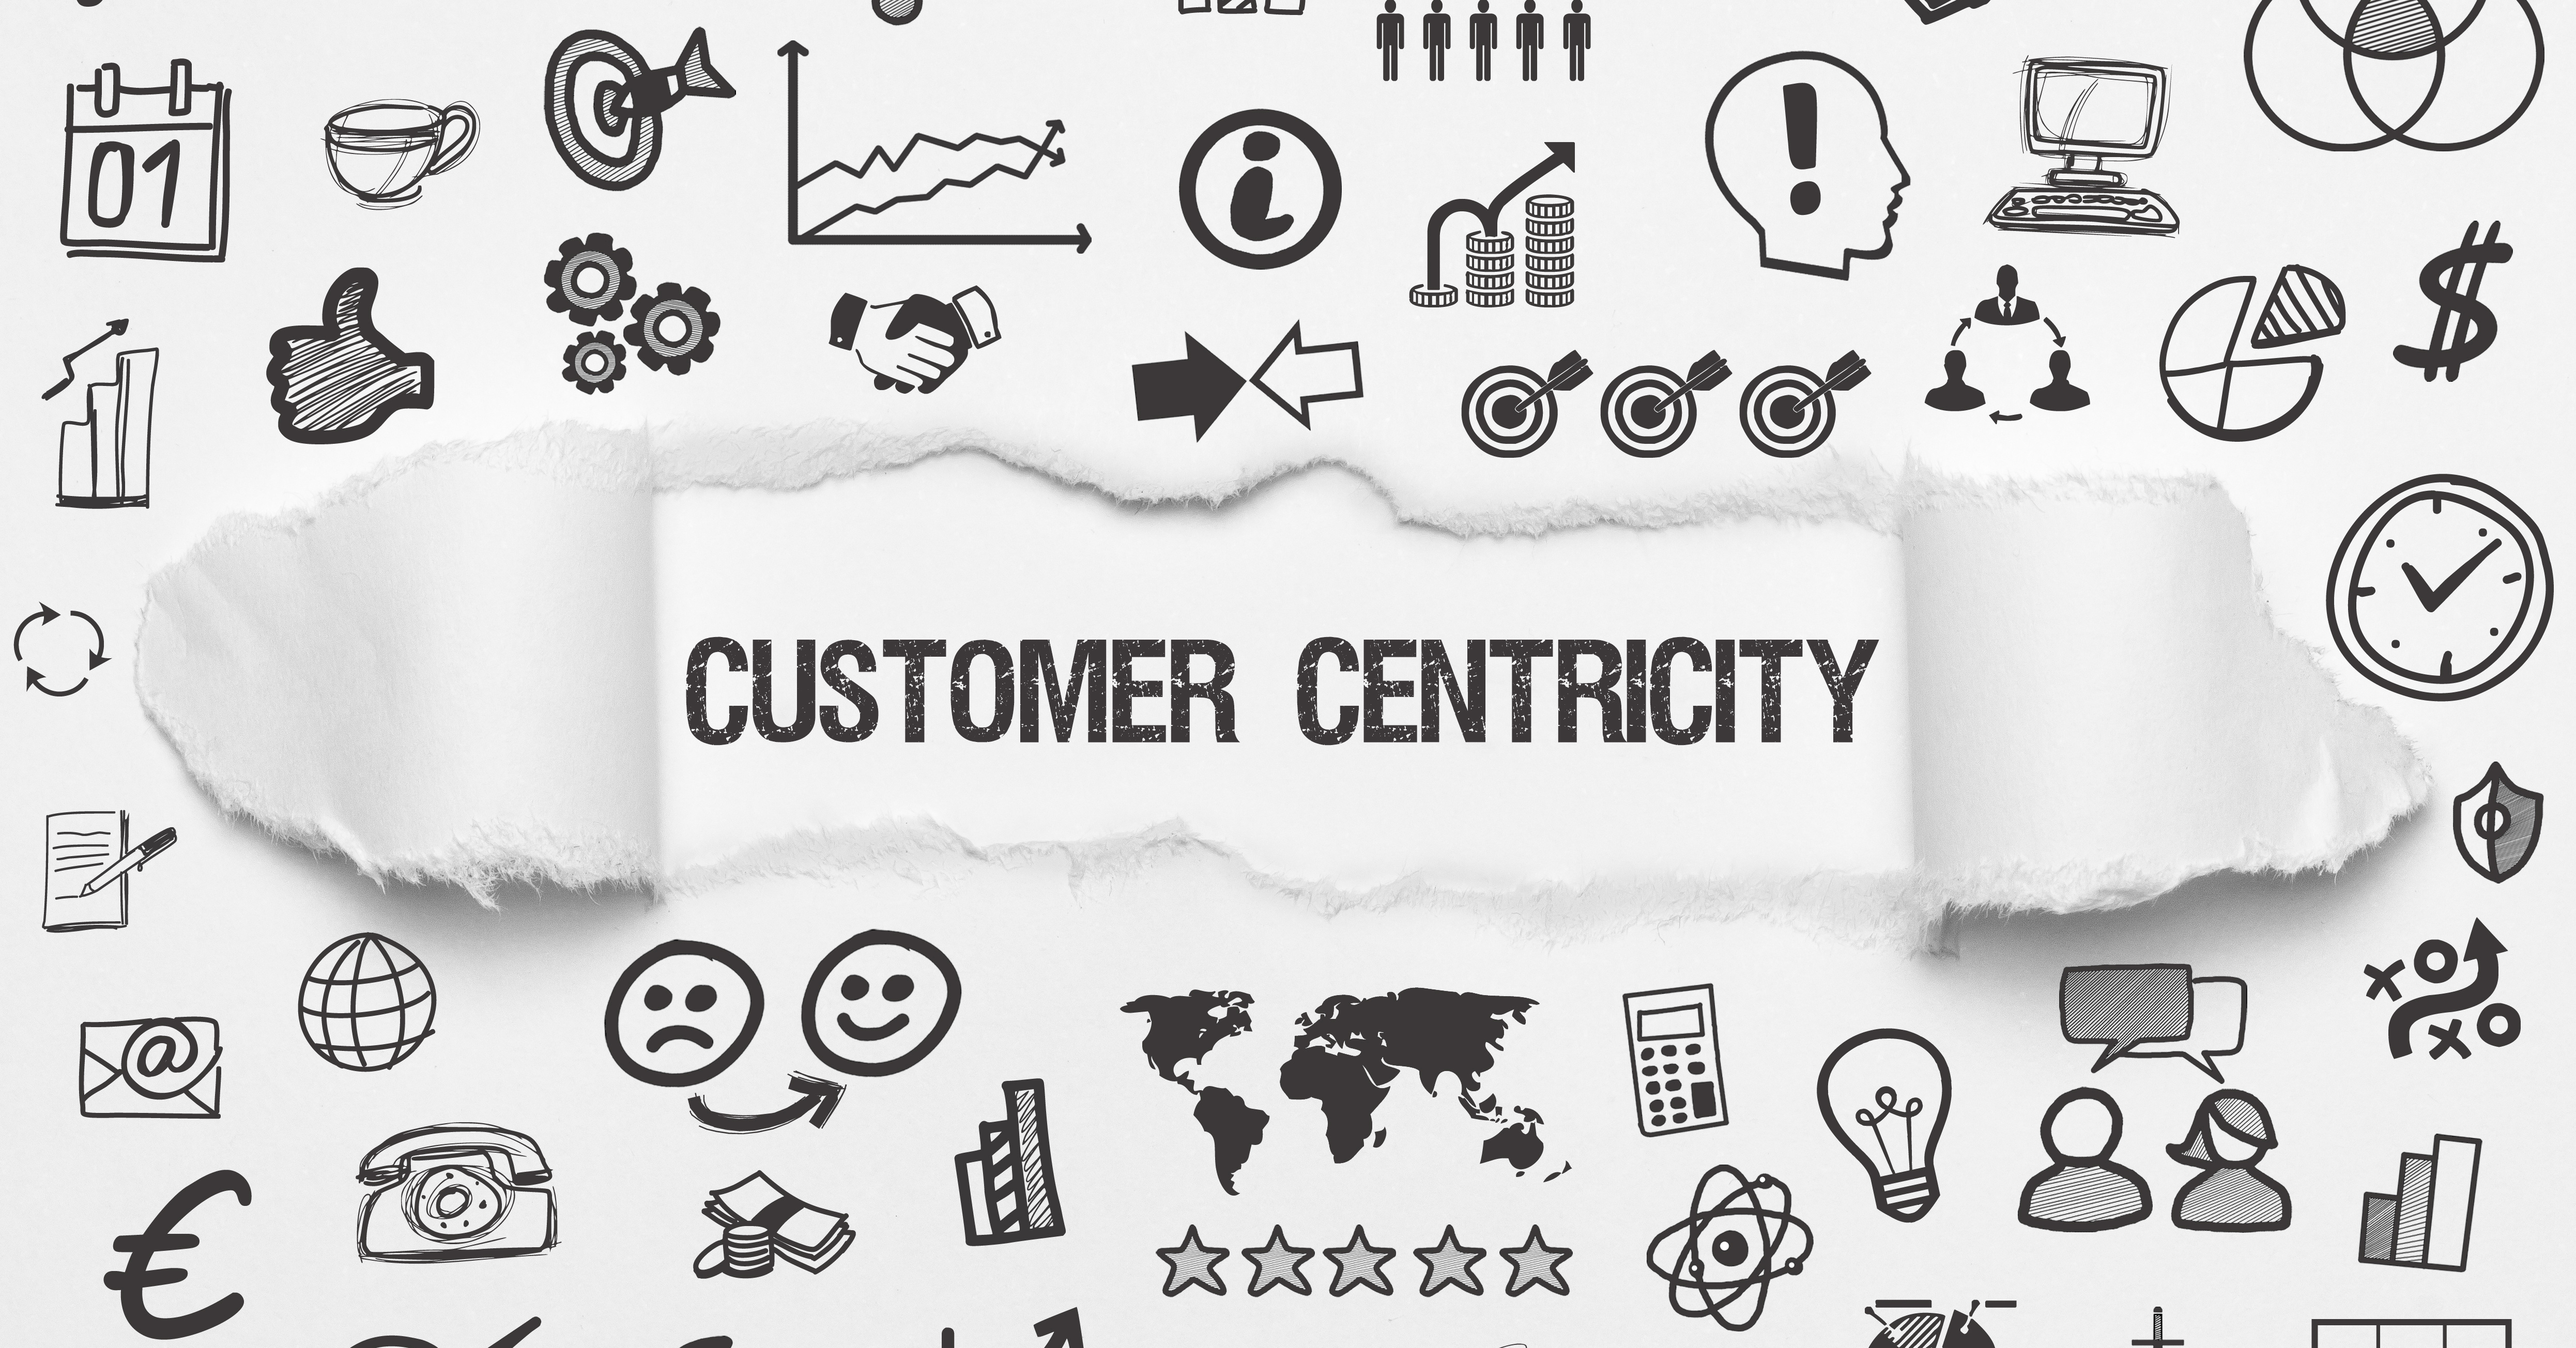 Empowering your Team to Become Customer Centric